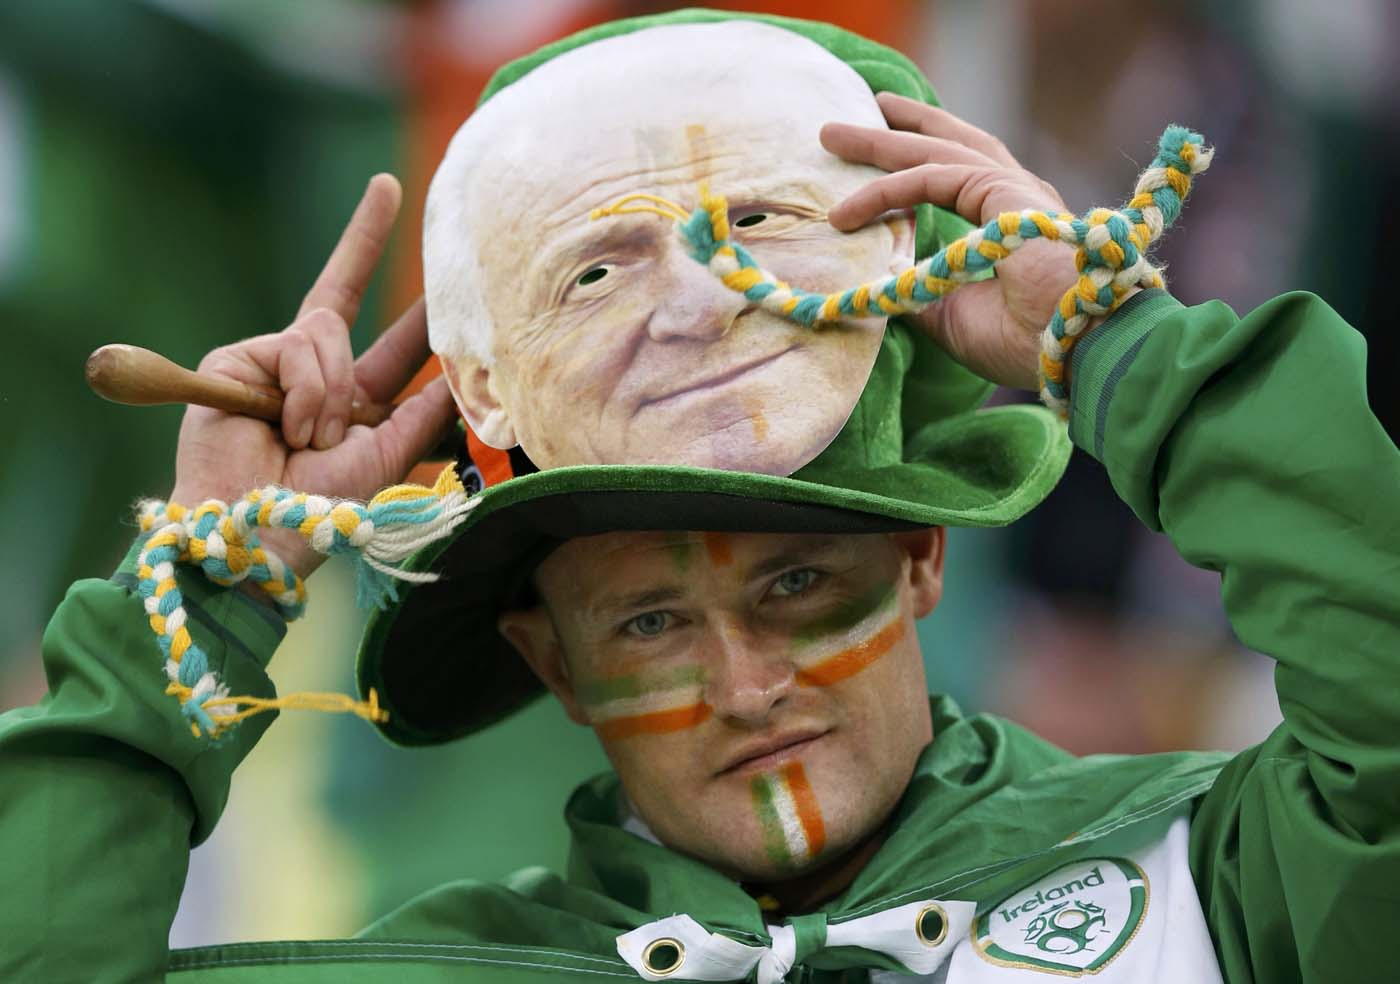 An Ireland's fan with a mask of Ireland's coach Giovanni Trapattoni waits for the start of their Group C Euro 2012 soccer match against Spain at the PGE Arena stadium in Gdansk, June 14, 2012. (Thomas Bohlen/Reuters)